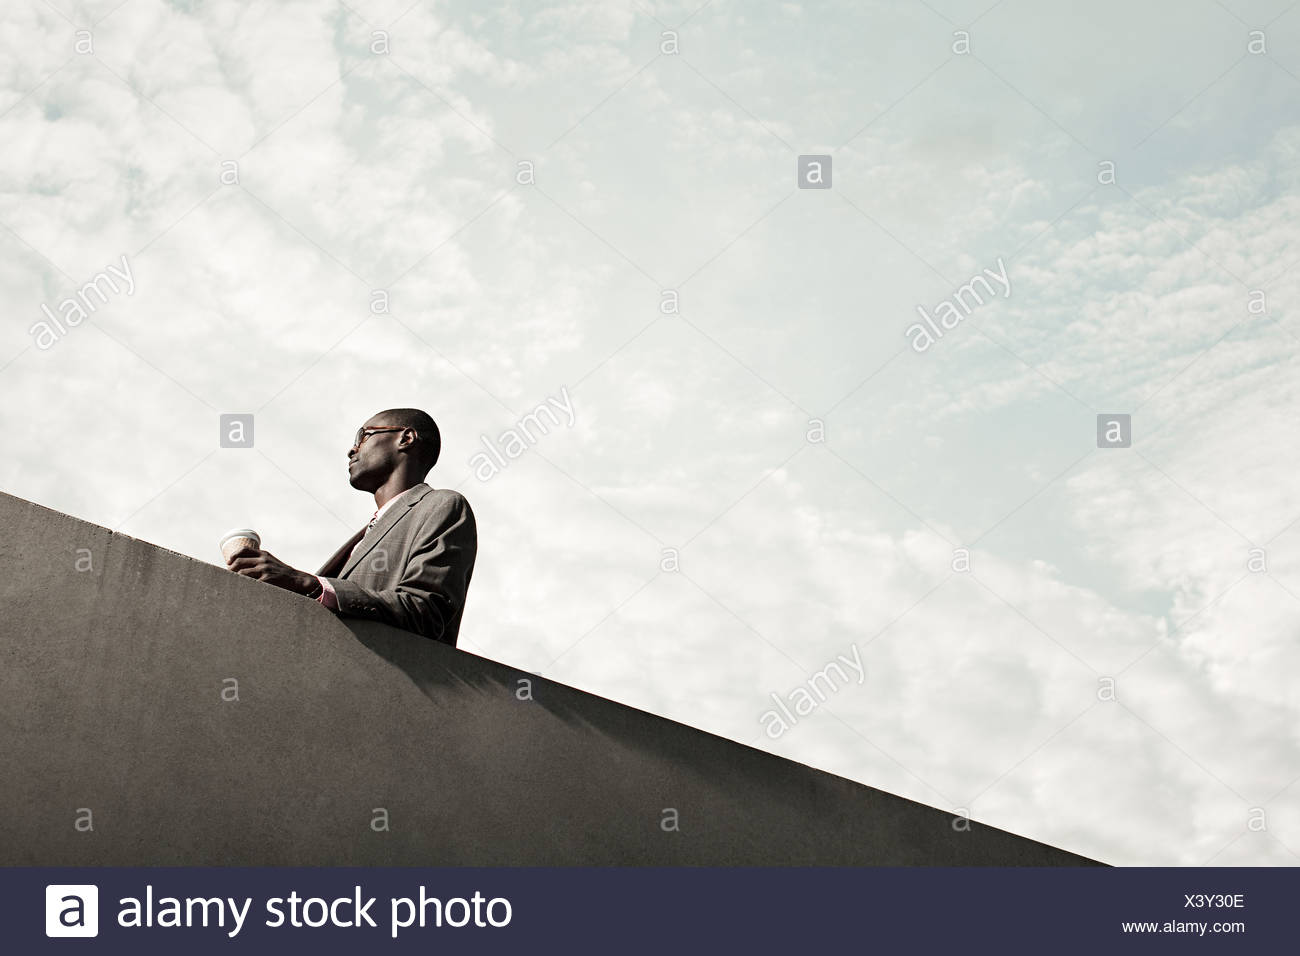 Businesswoman by wall with disposable cup, low angle - Stock Image